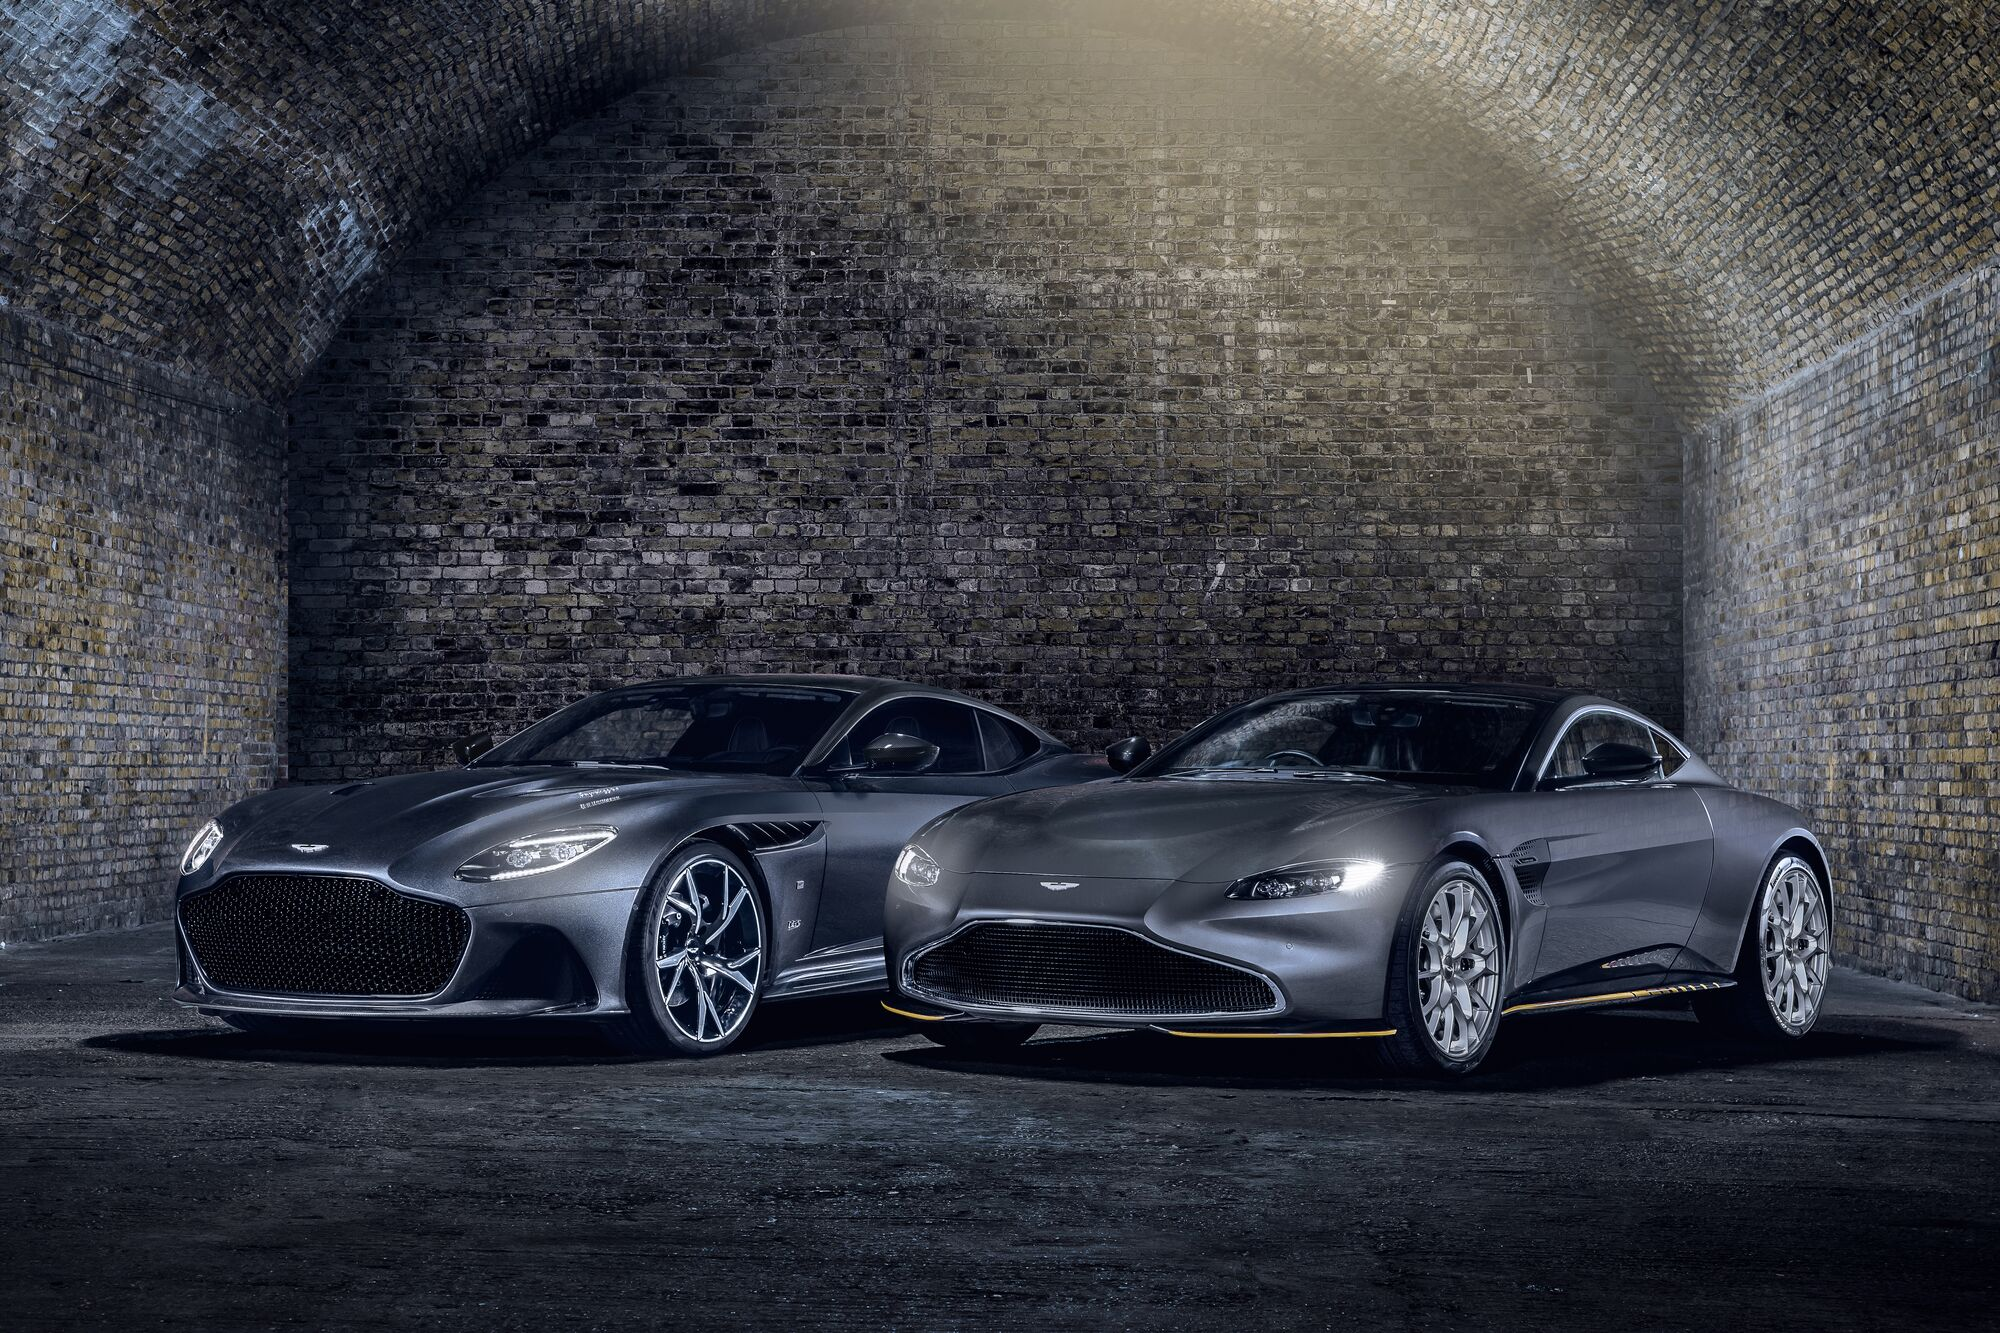 Media Release - Q By Aston Martin Creates New 007 Limited Edition Sports Cars To Celebrate No Time To Die